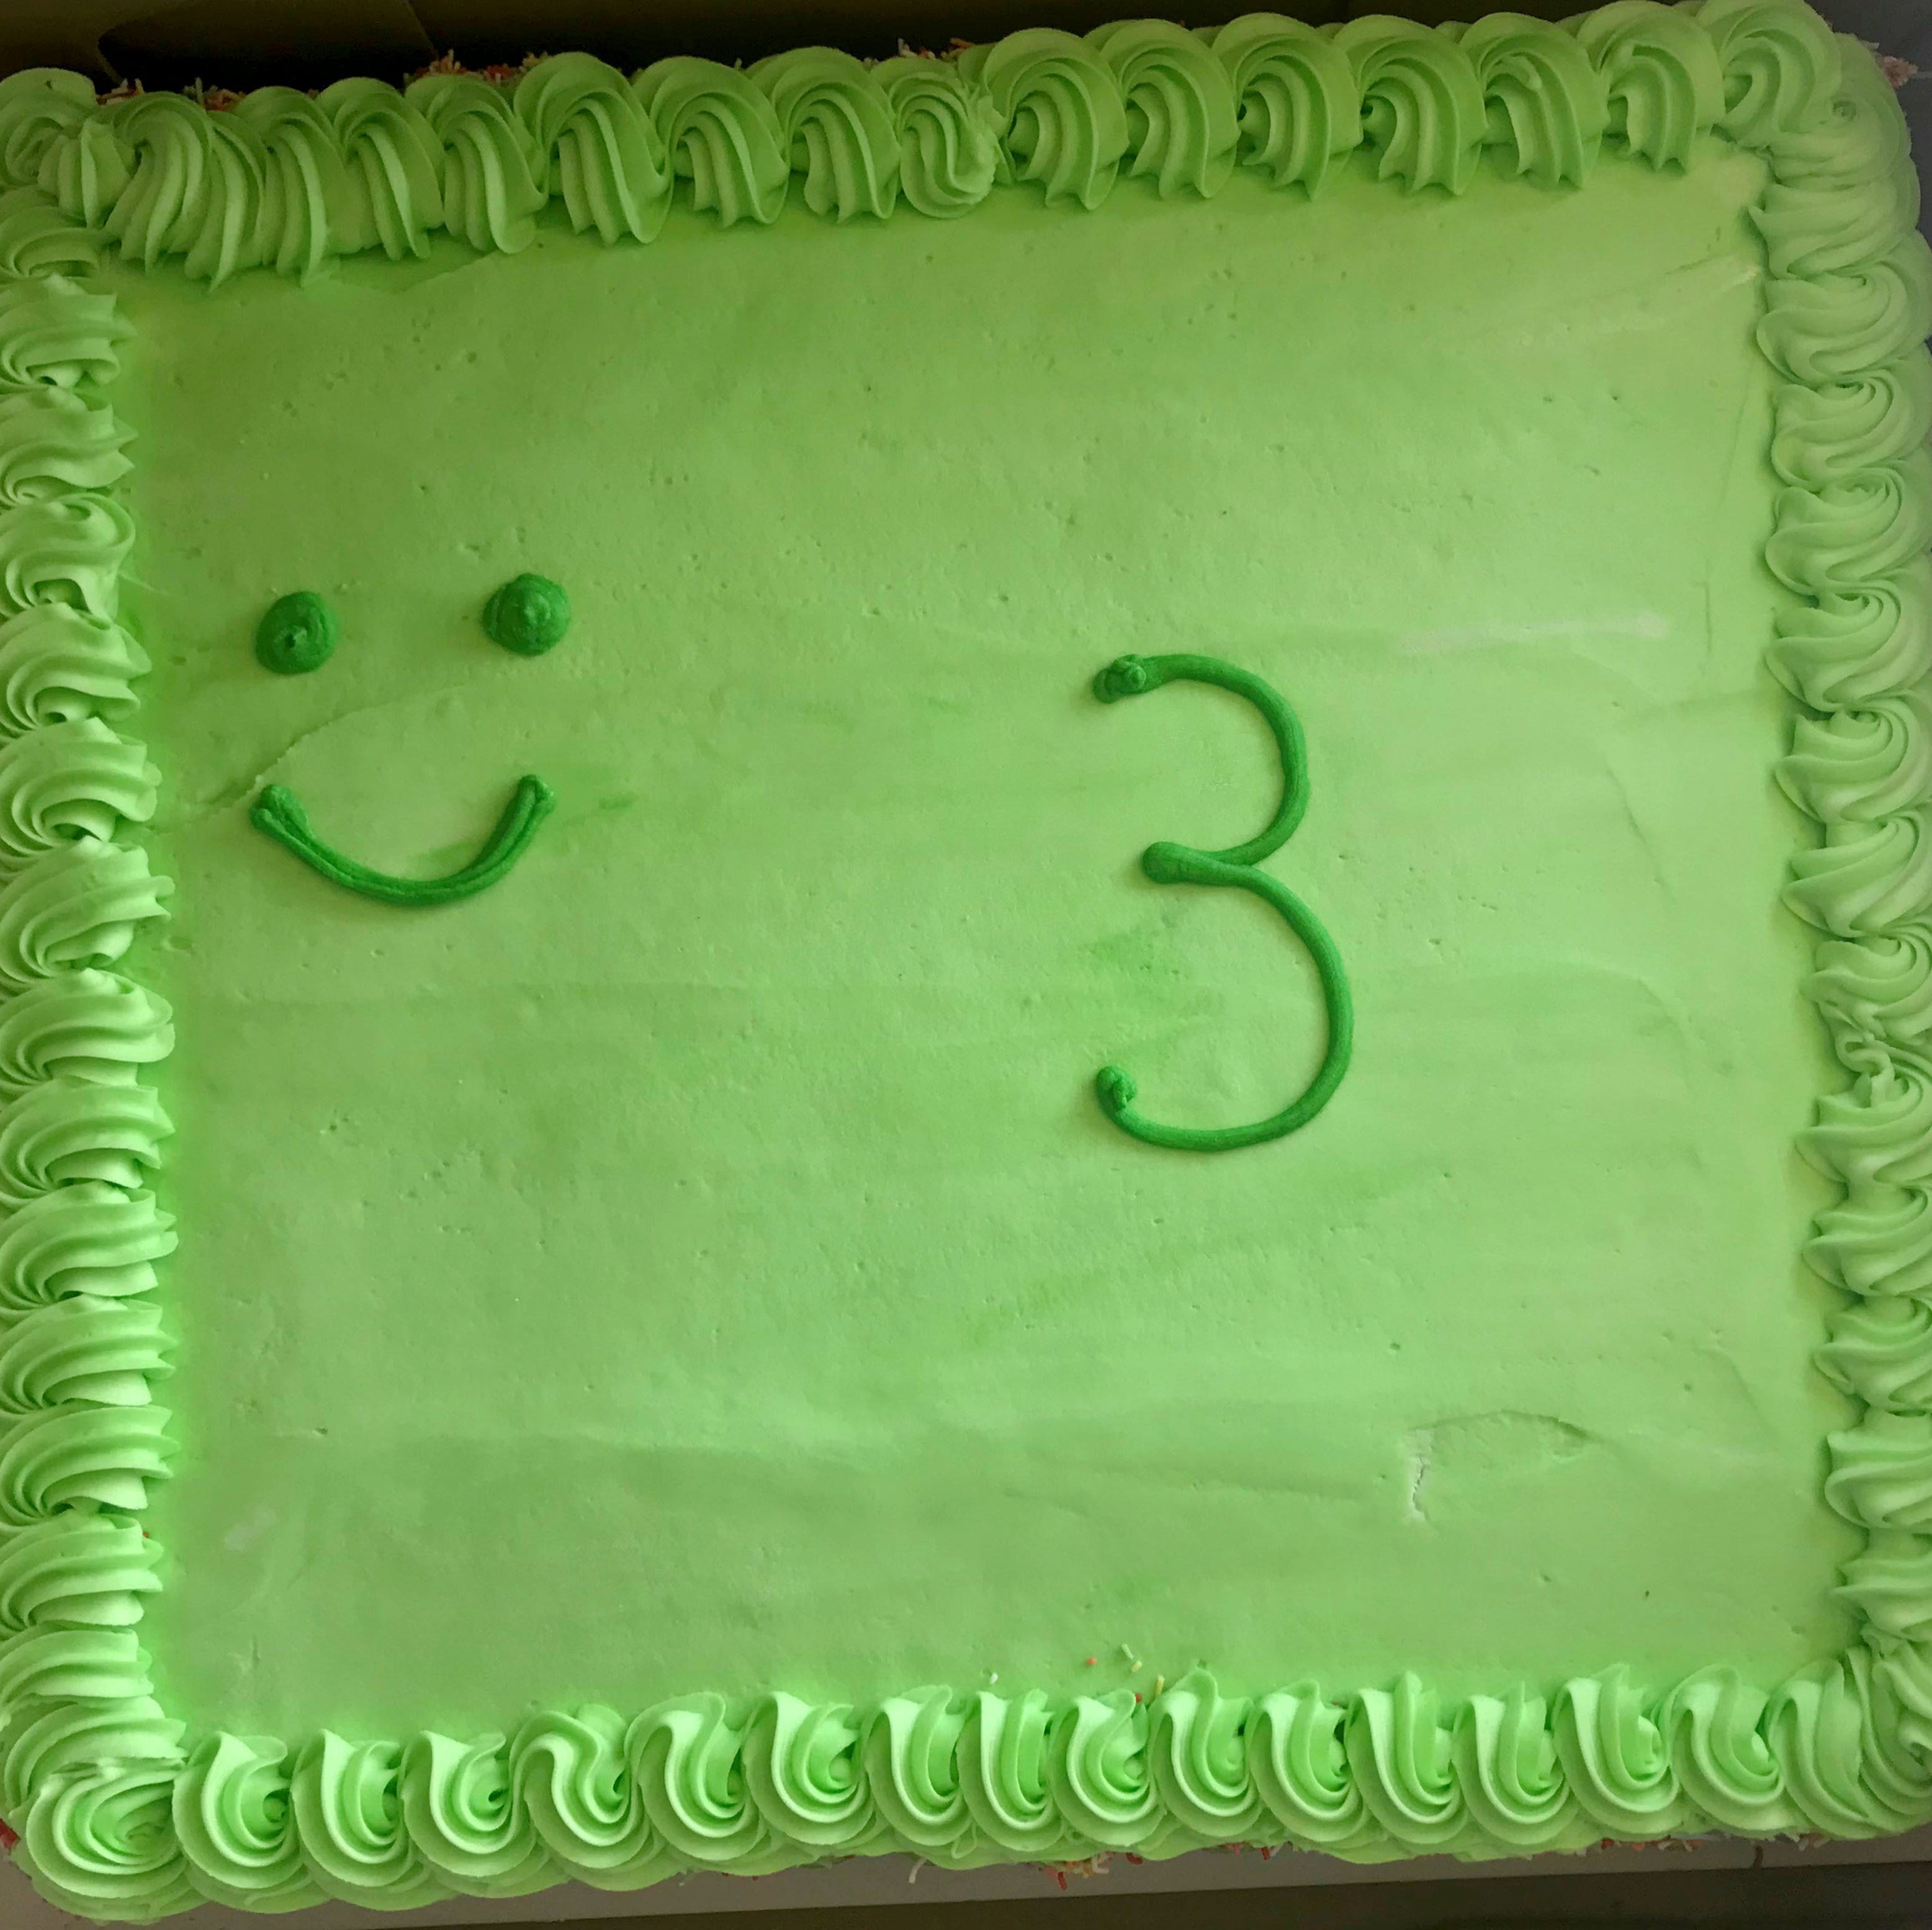 'Pathetic' frog birthday cake leave parents 'mortified'